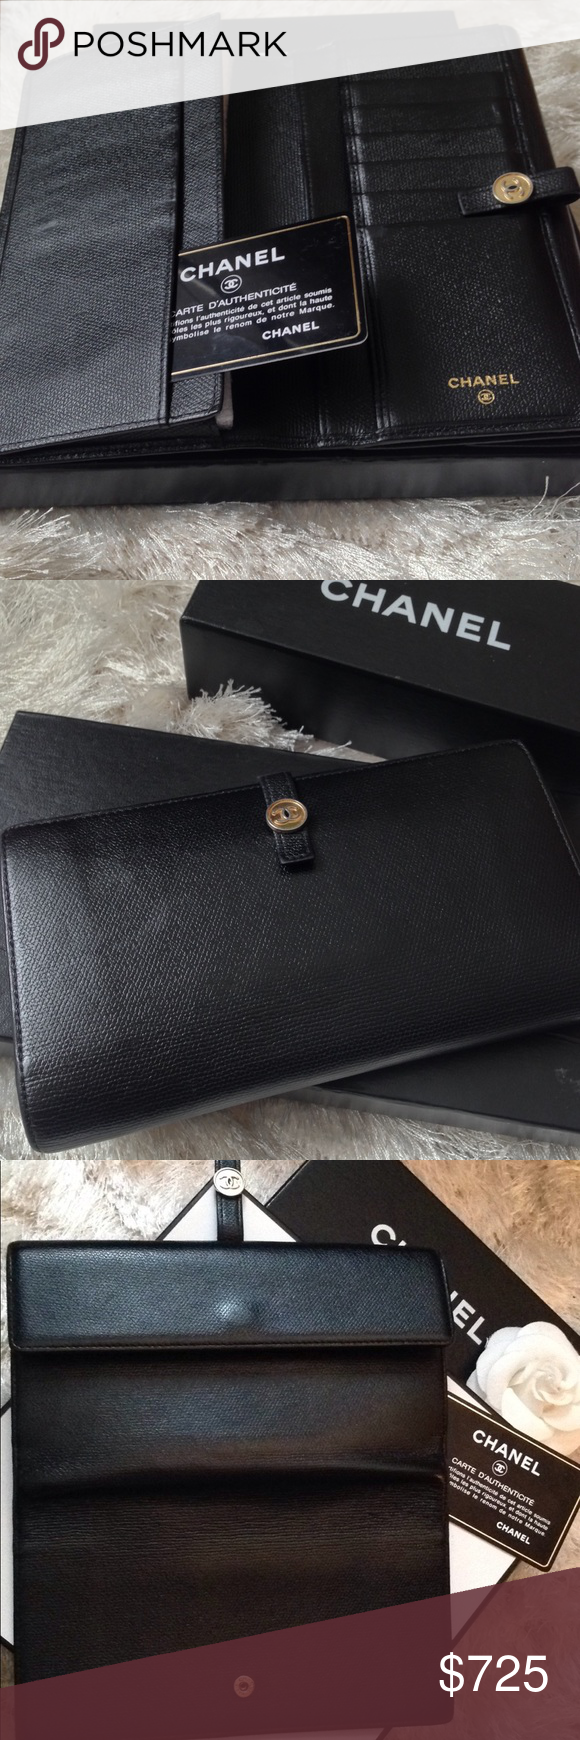 Auth Chanel Cc Logo Black Bifold Leather Wallet Authentic